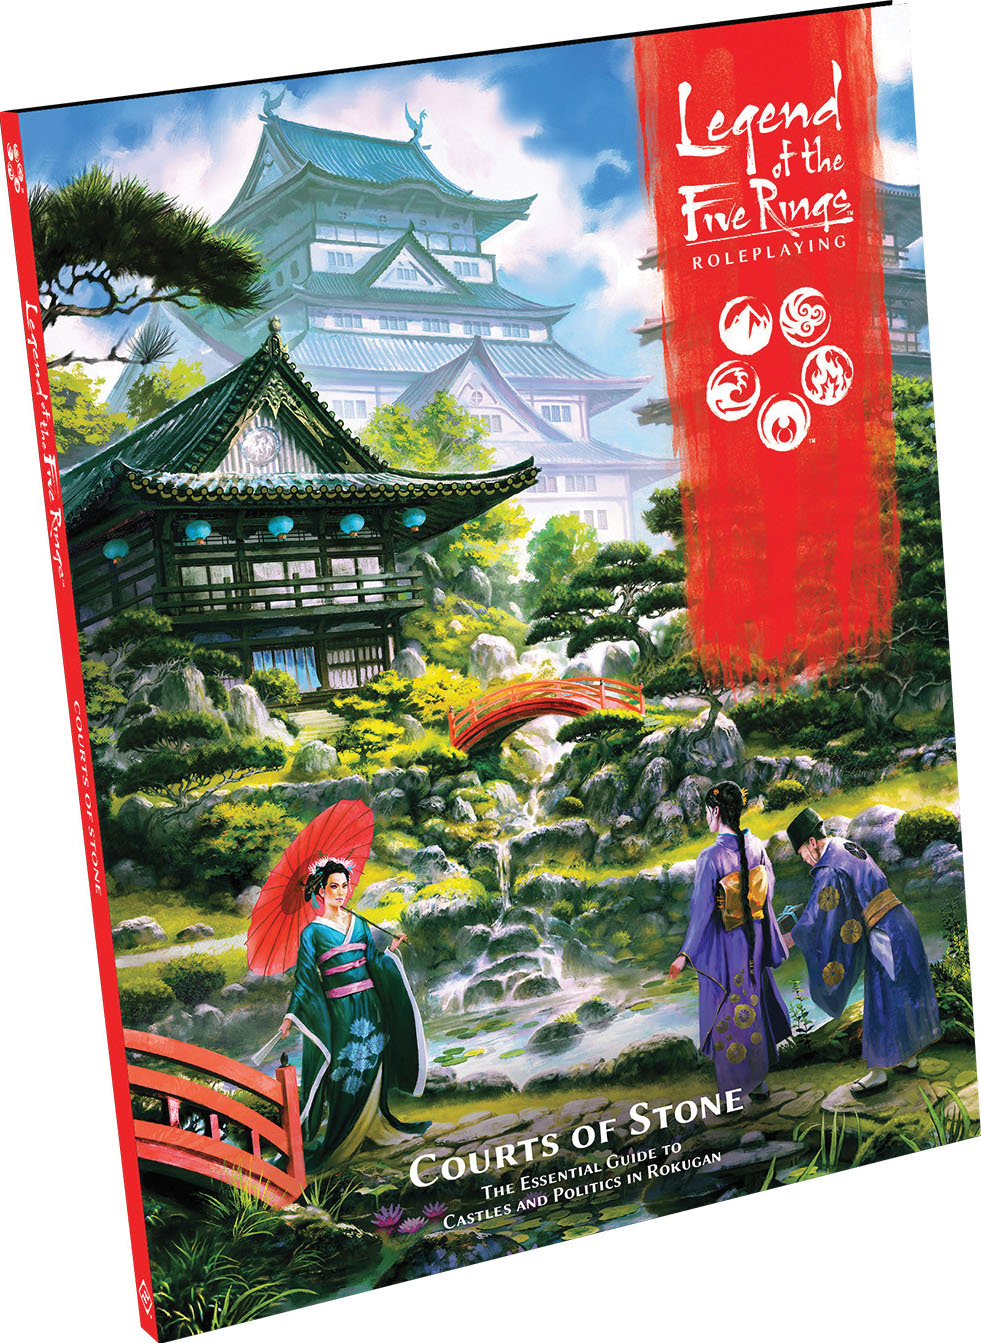 Legend Of The Five Rings Rpg: Courts Of Stone Hardcover Game Box